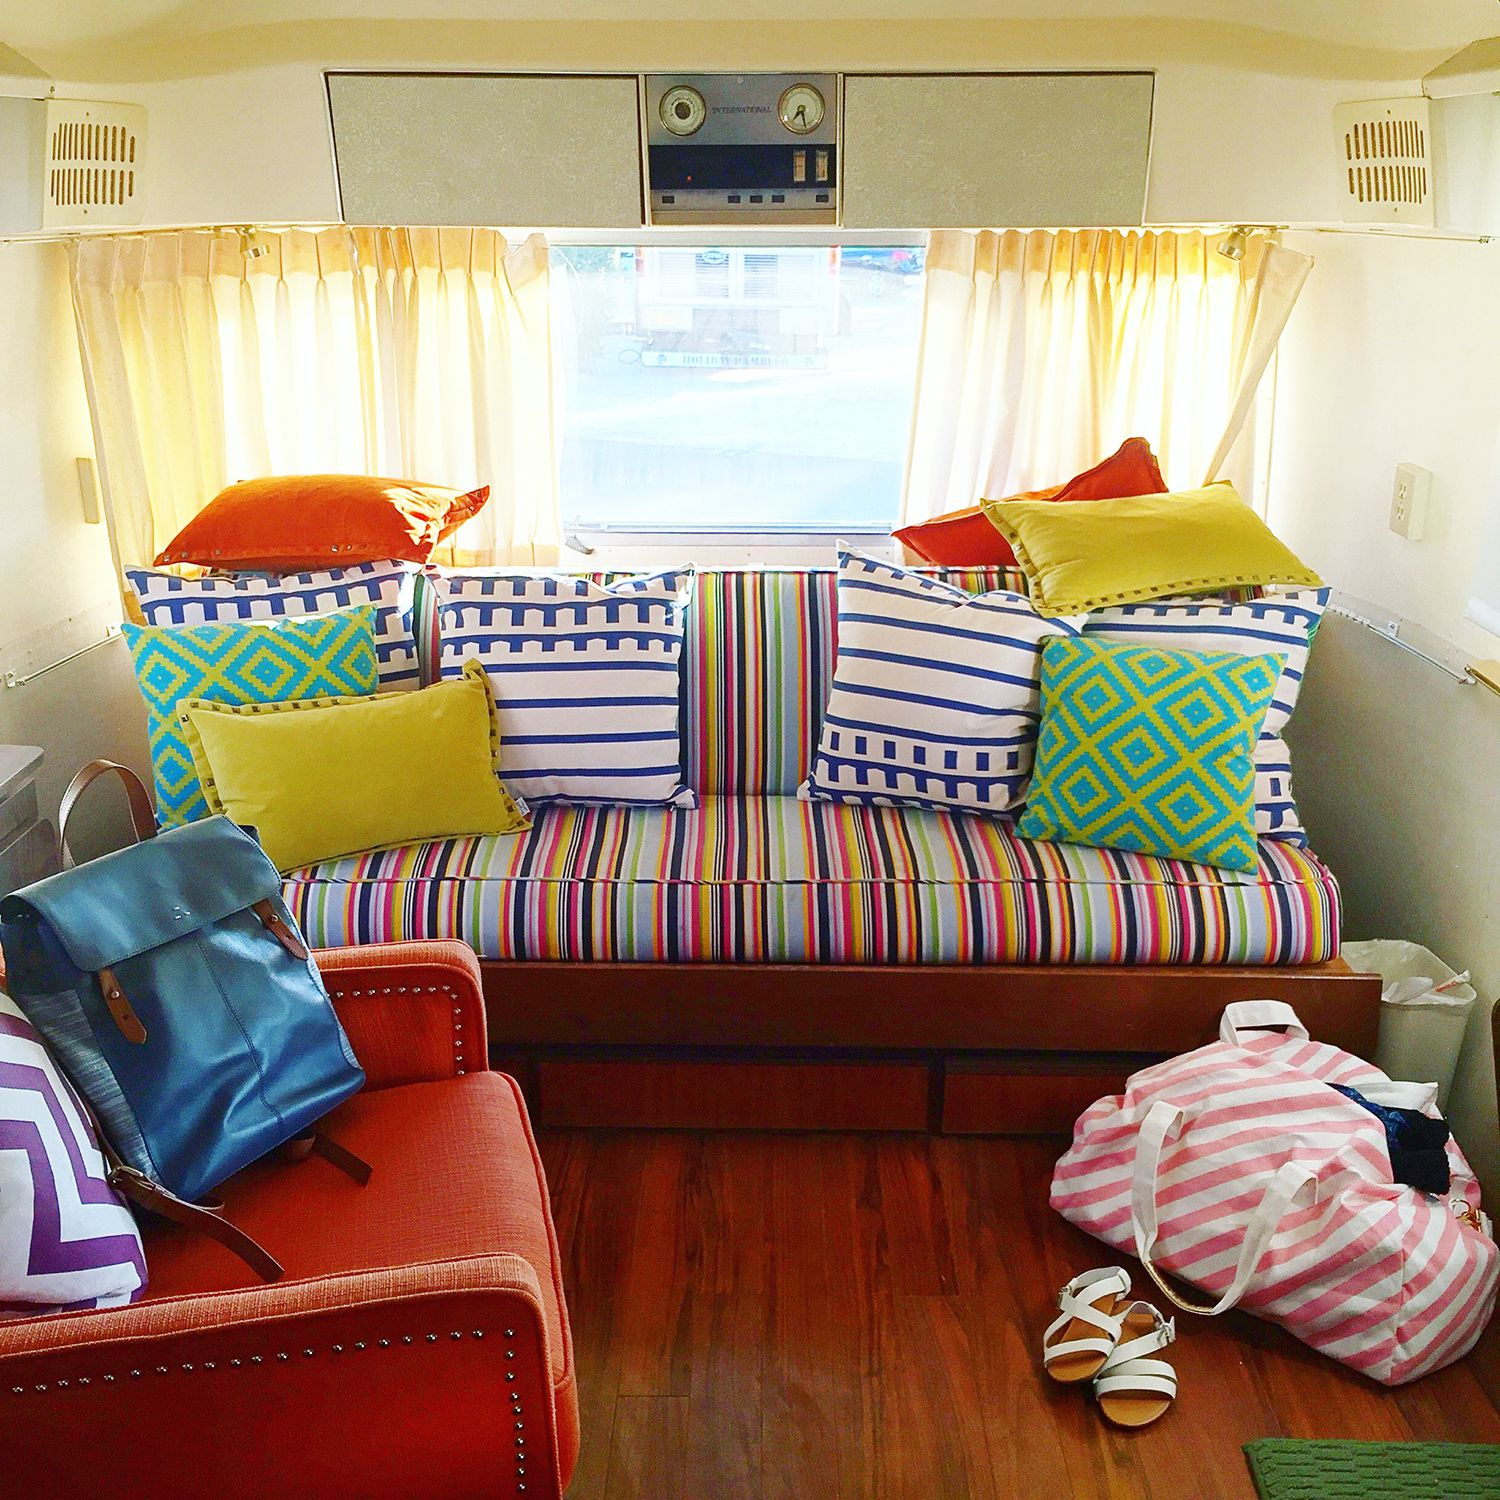 Hotel Review Palm Canyon Hotel & Rv Resort  Minitime  Airstream Amazing Living Room Candidate Decorating Design